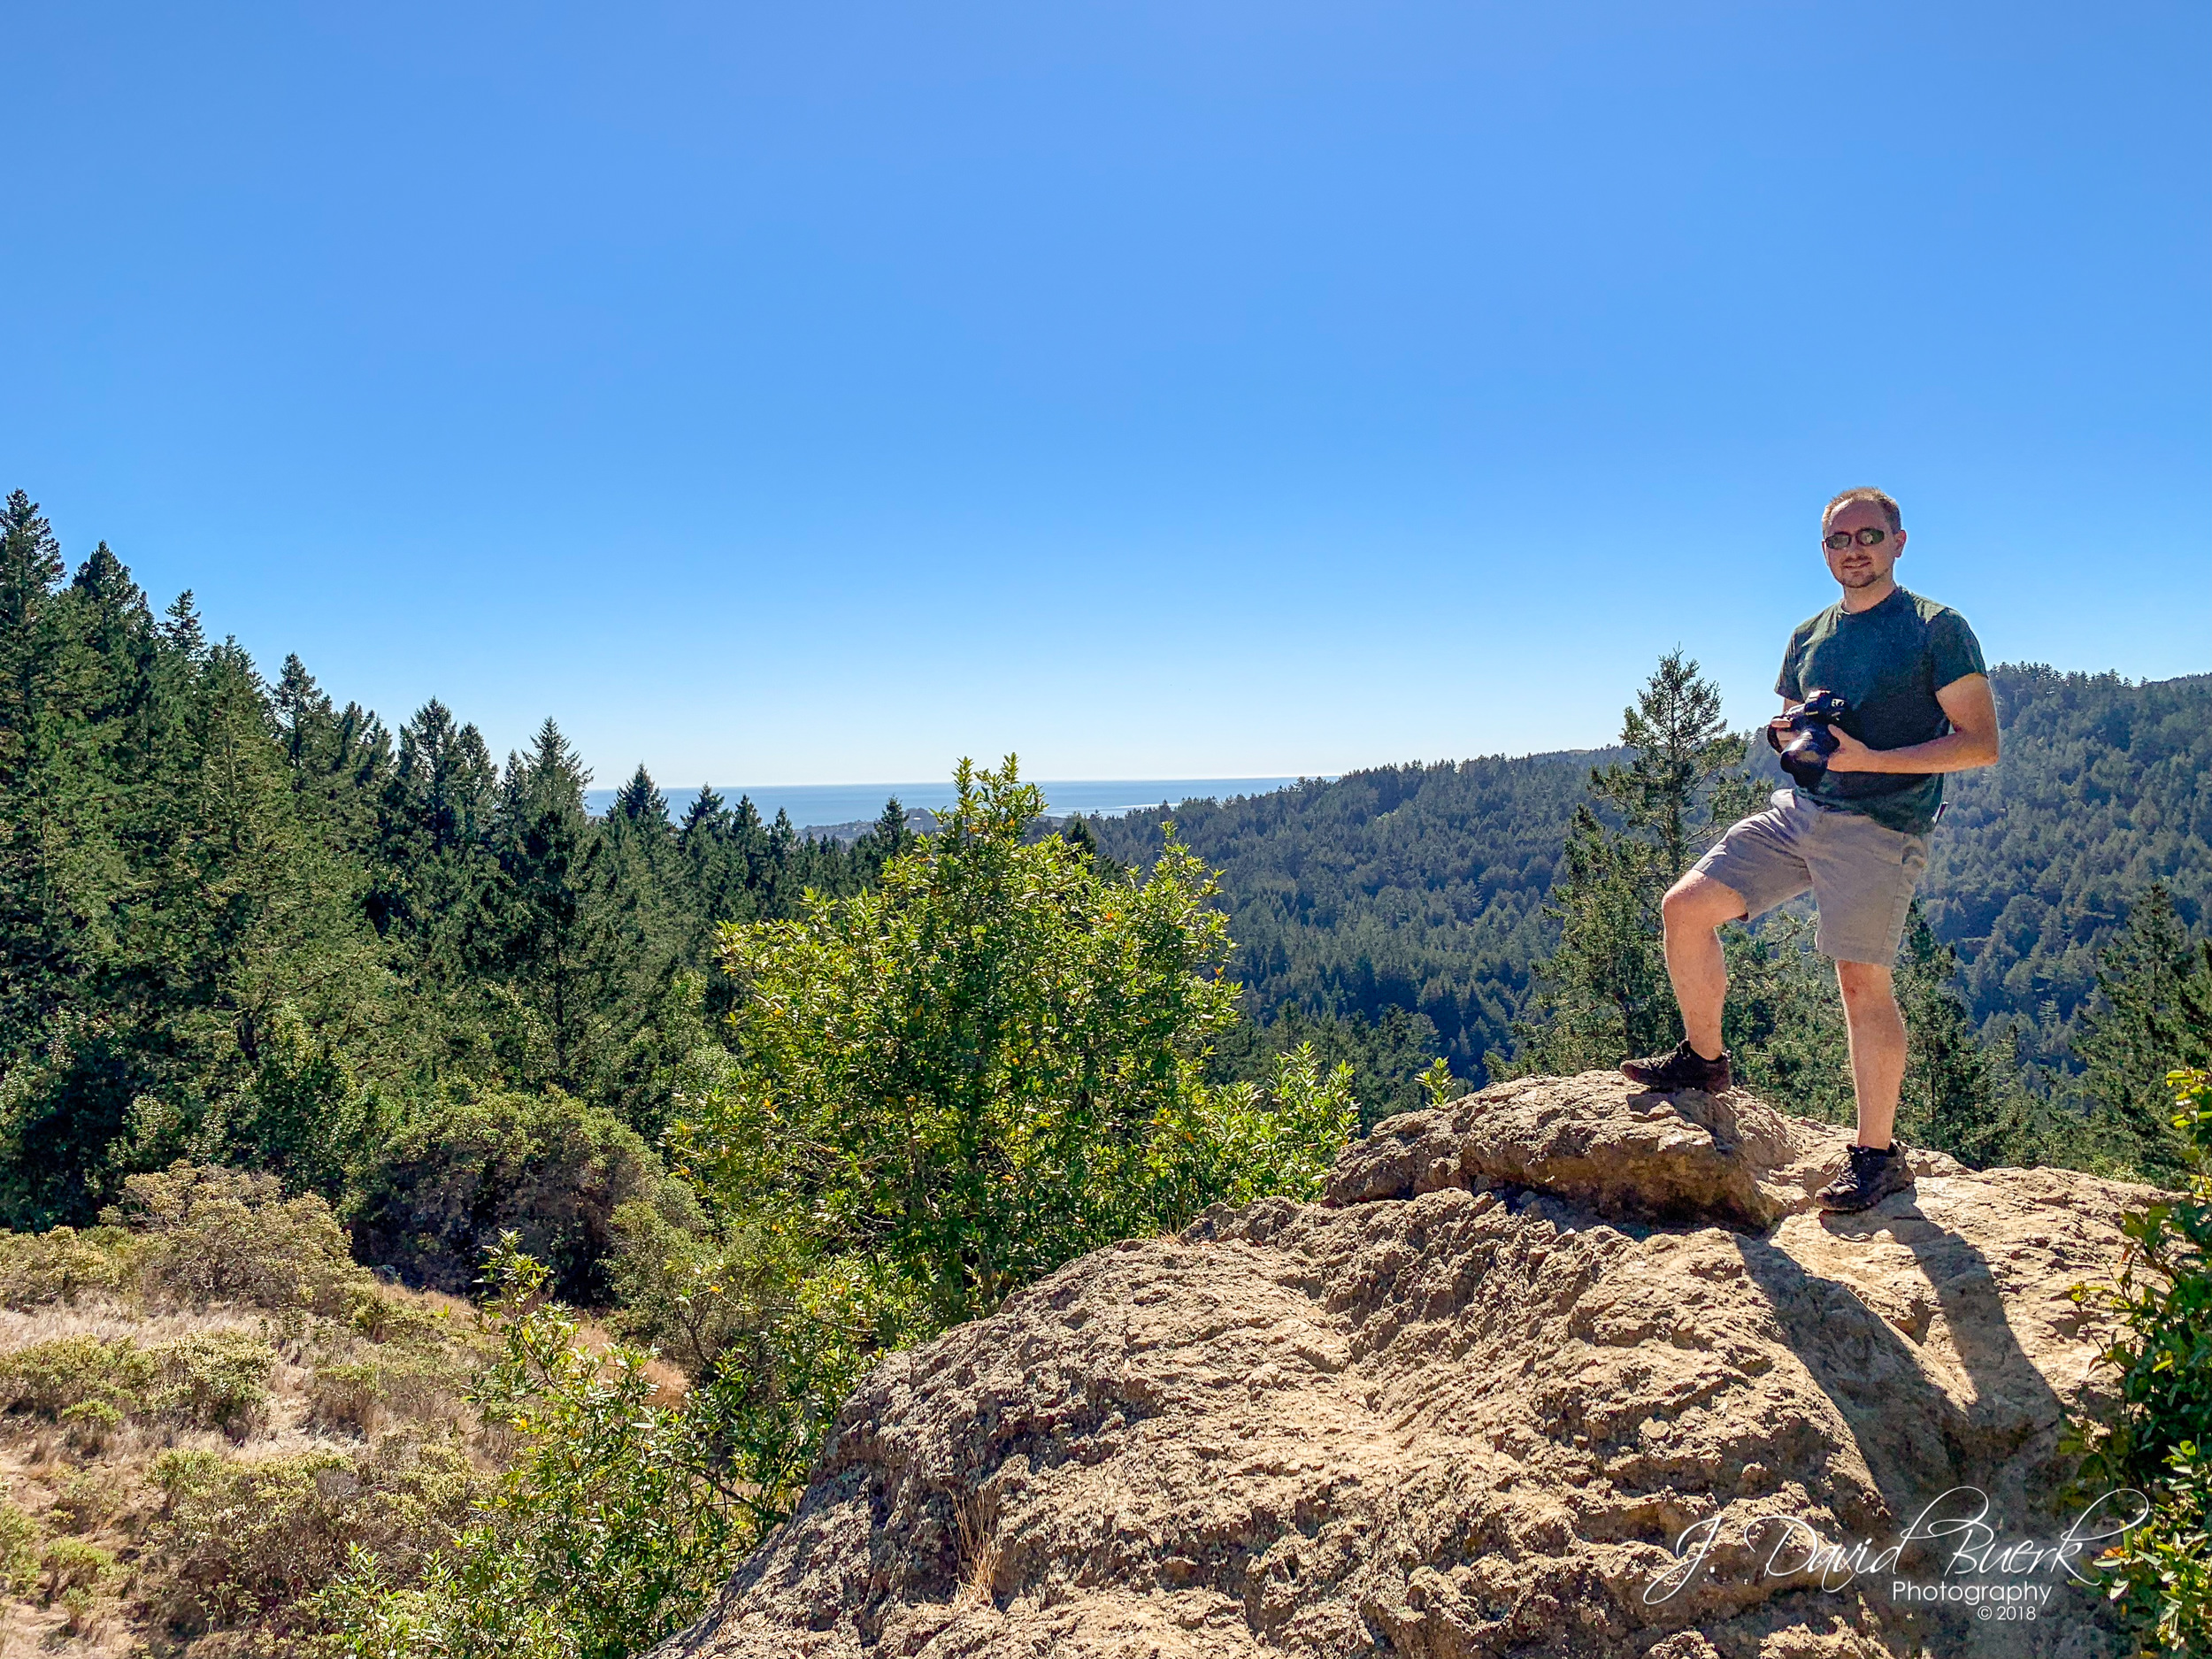 Myself atop the Panoramic peak above Muir Woods, Mill Valley, California. Shot and edited entirely on iPhone XS.